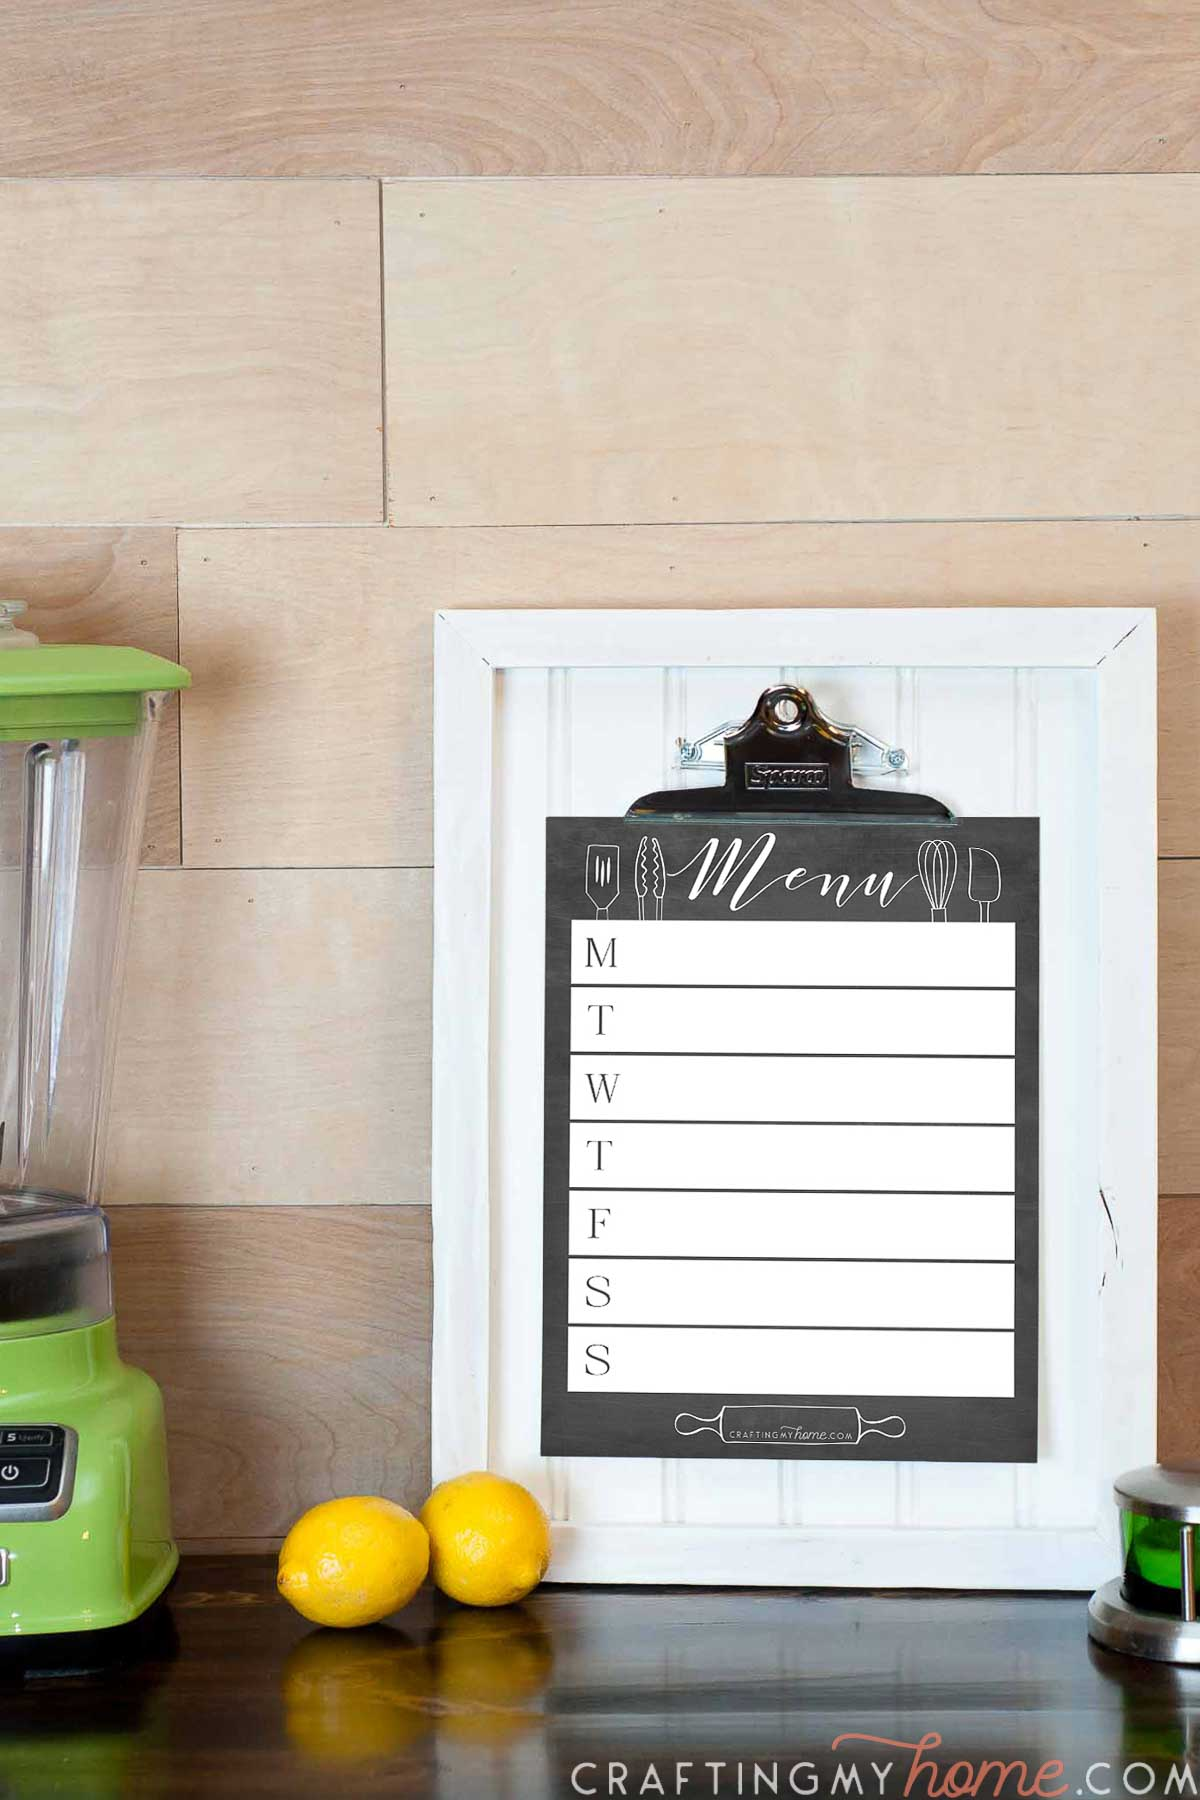 White clipboard picture frame with chalkboard weekly menu planner clipped to it and kitchen stuff around it.